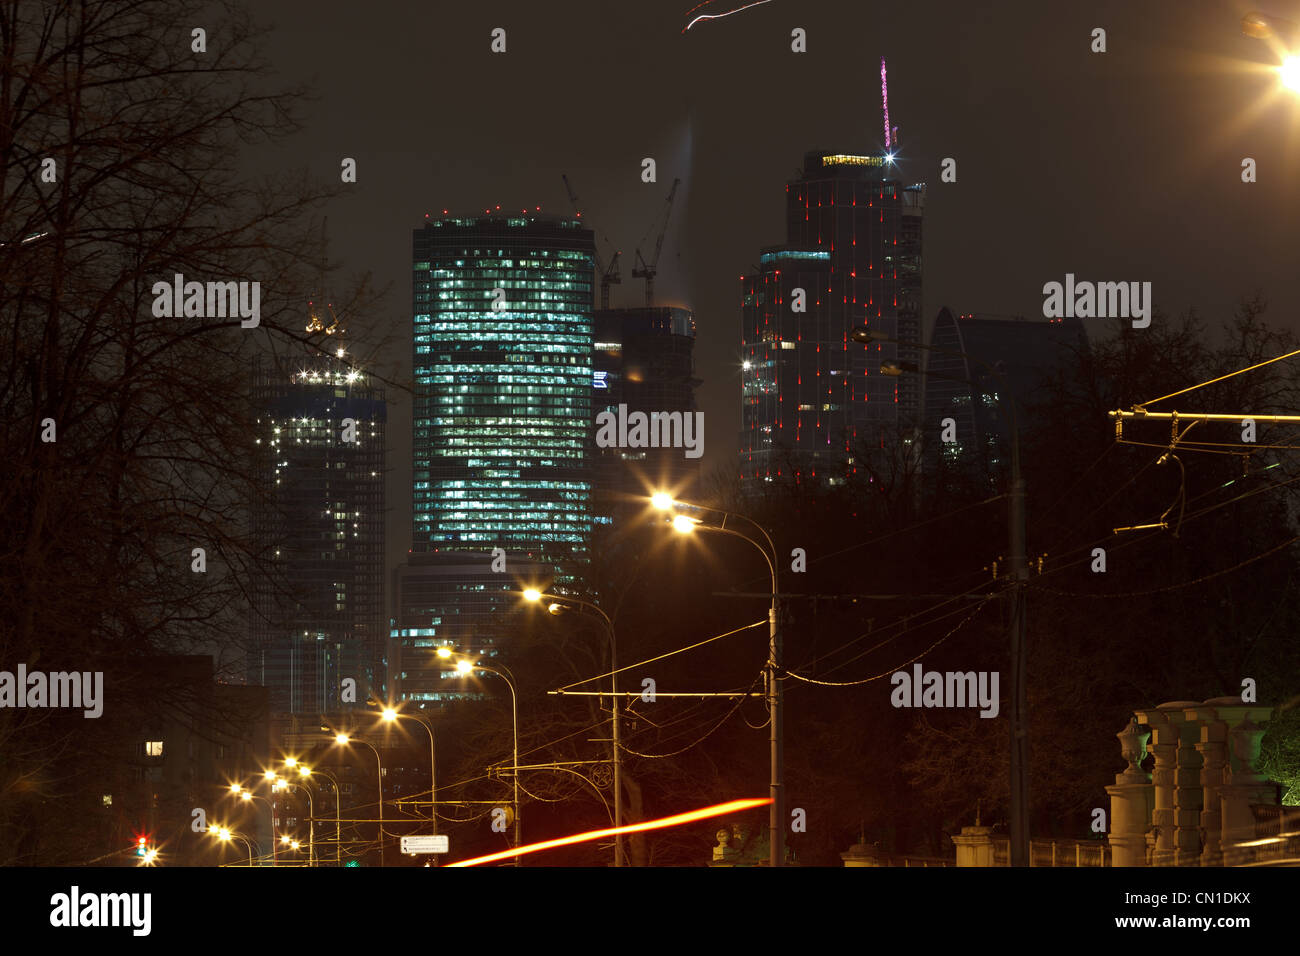 Moscow city Federatsiya tower on fire (19 of April 2012) - Stock Image